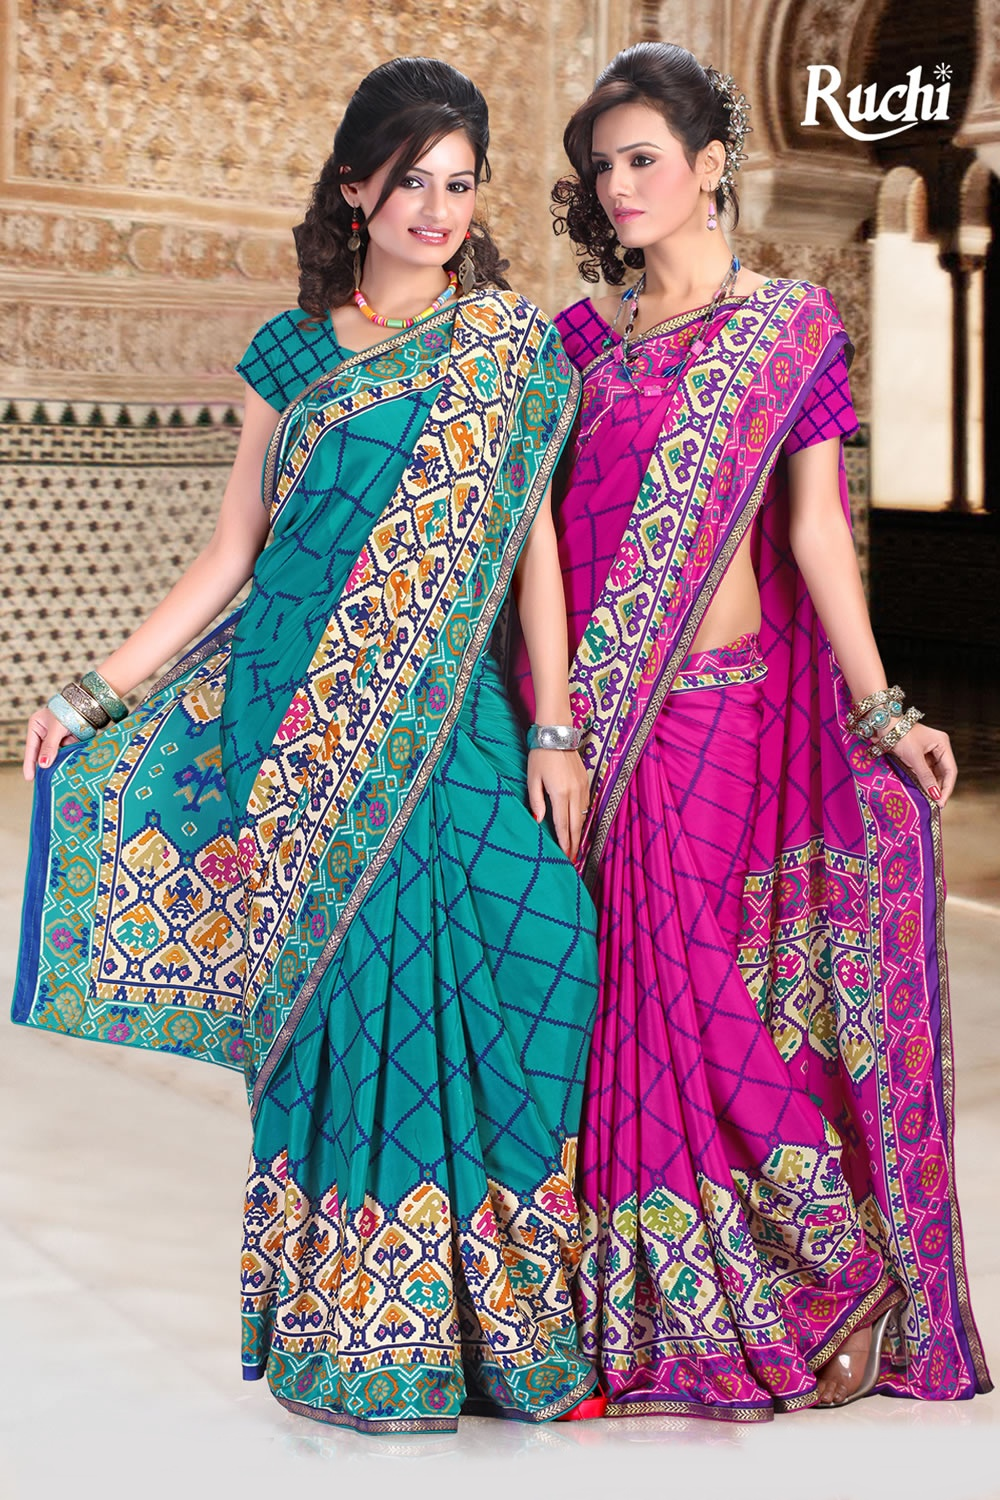 ruchi designer sarees colorful party wear spring saree collection